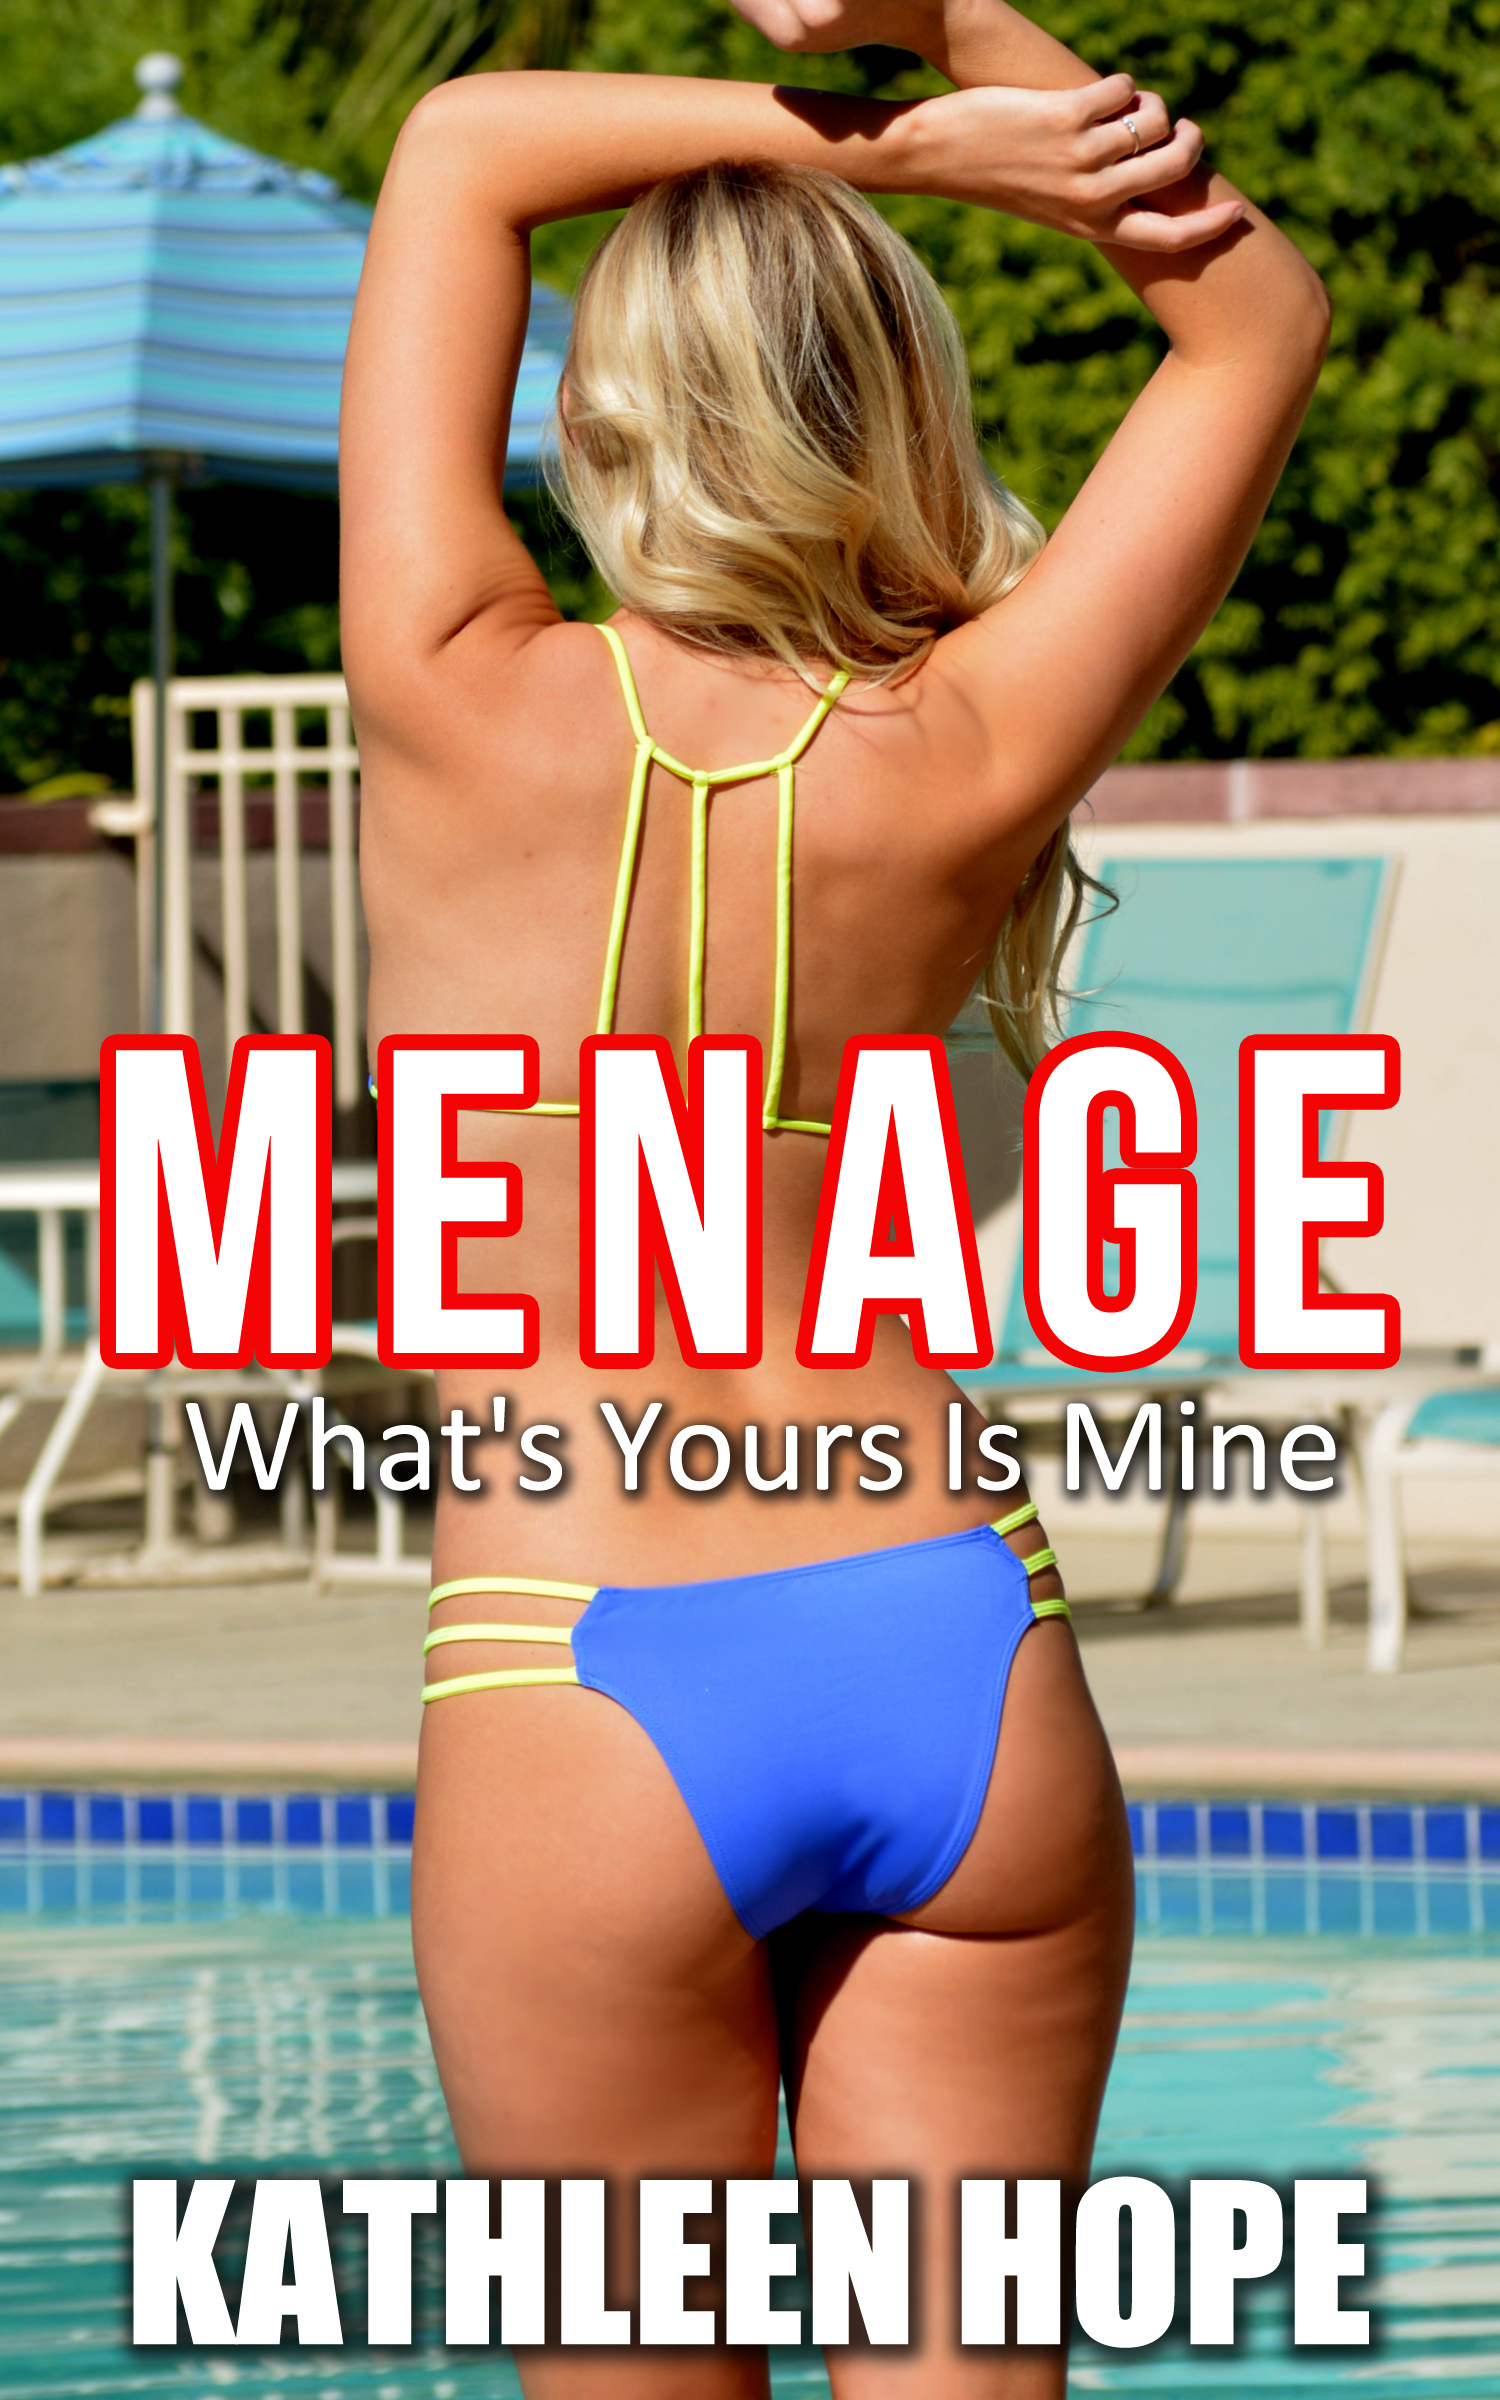 Menage: whats yours is mine